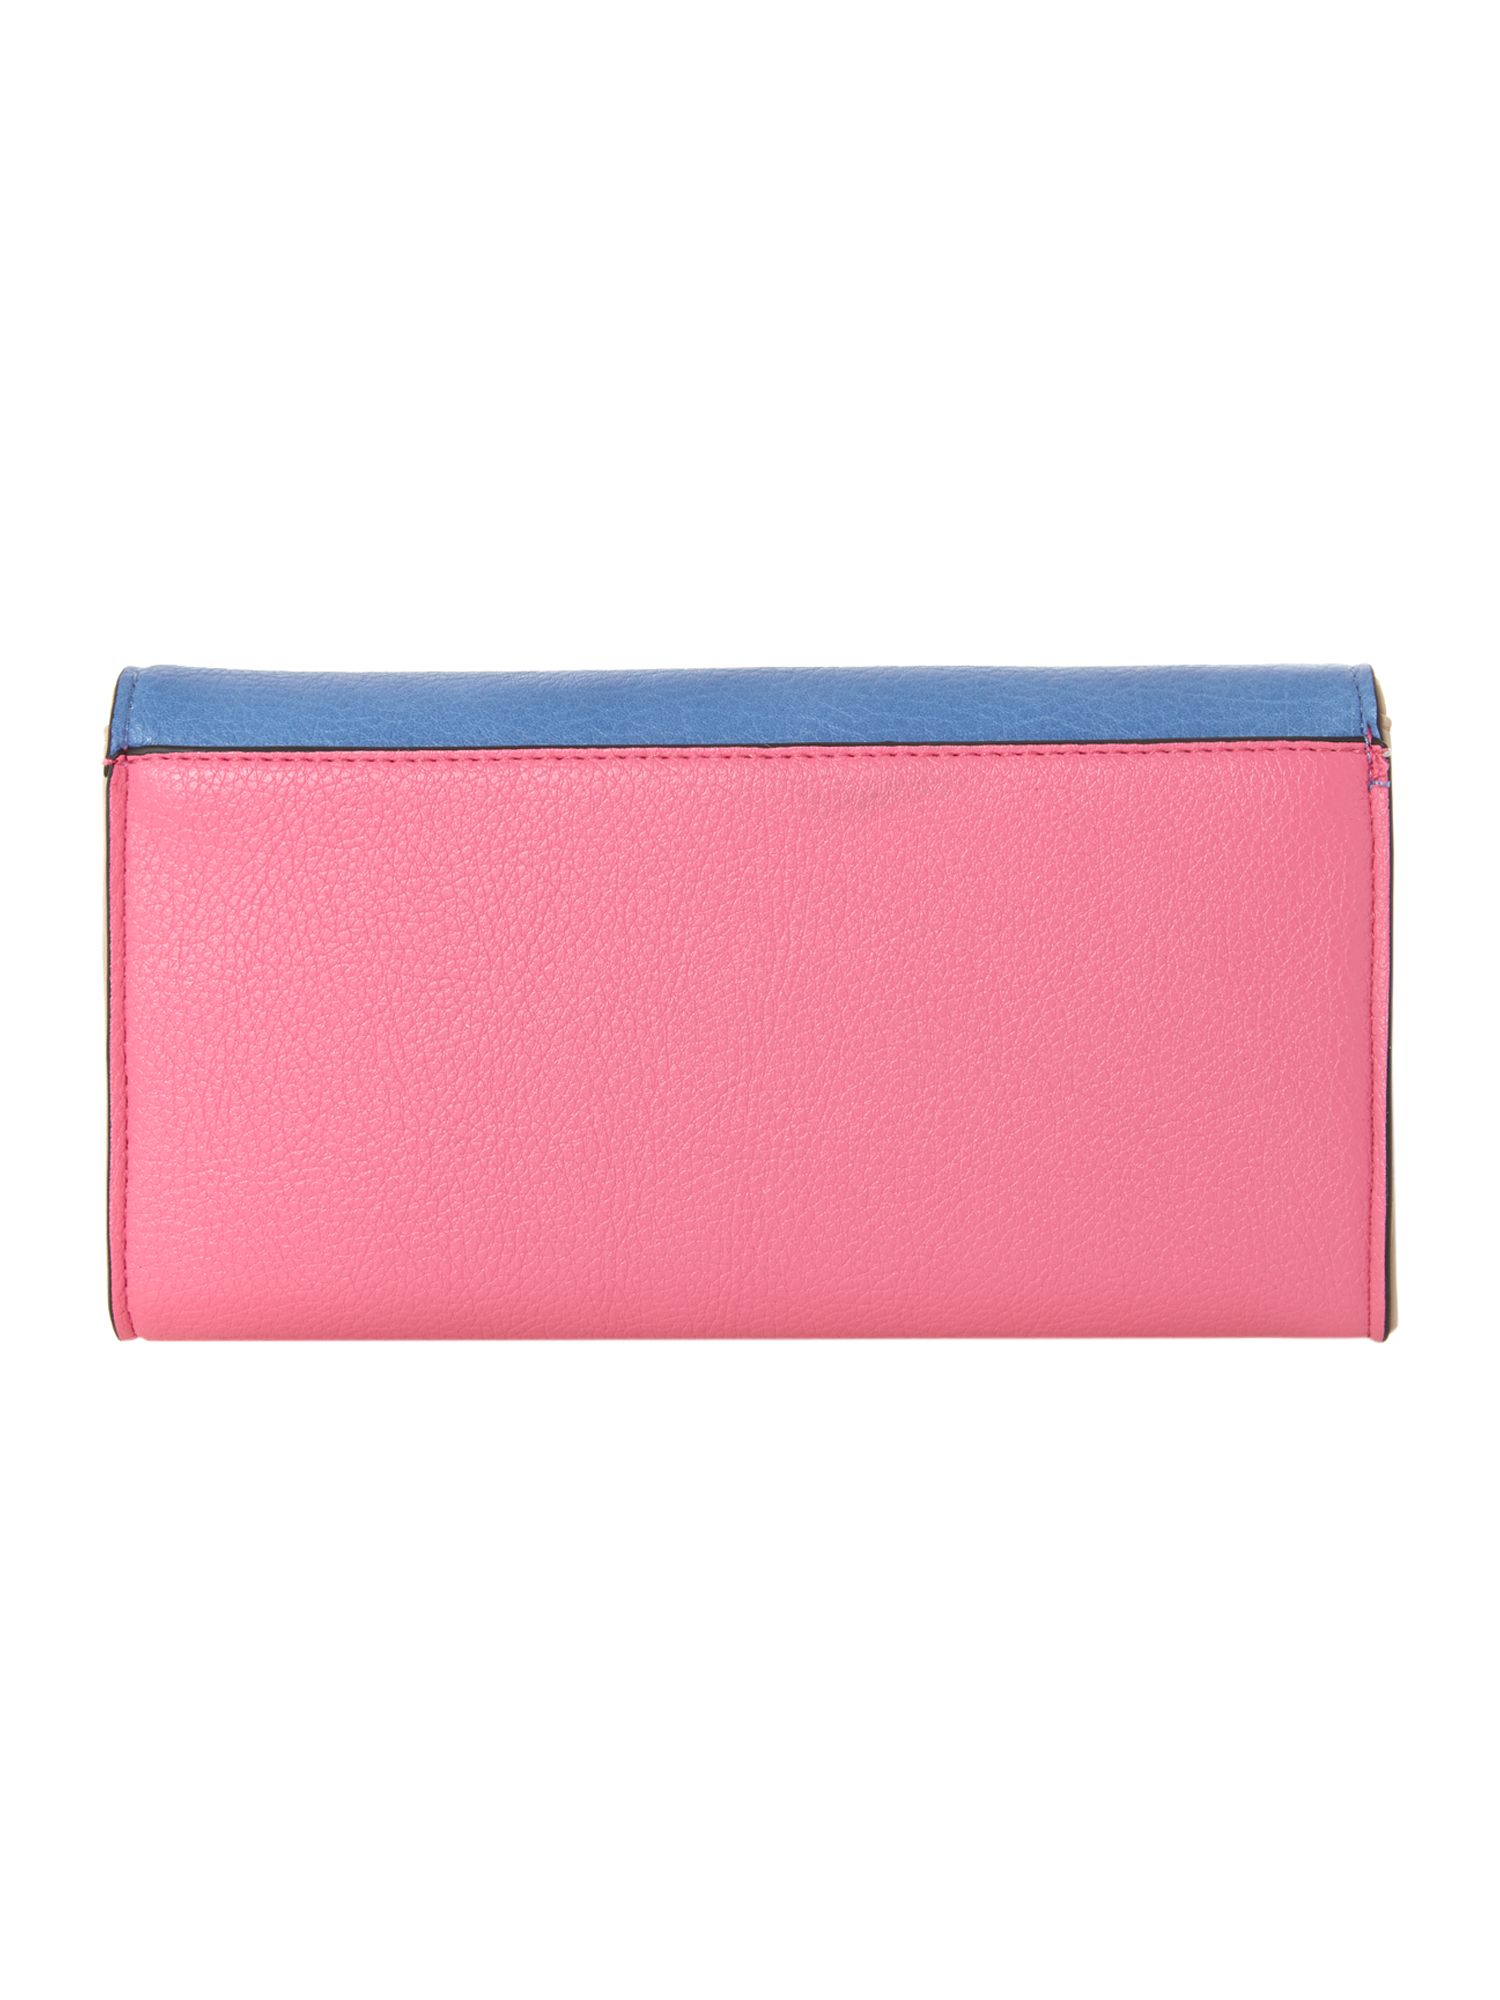 Adele blue large flapover purse